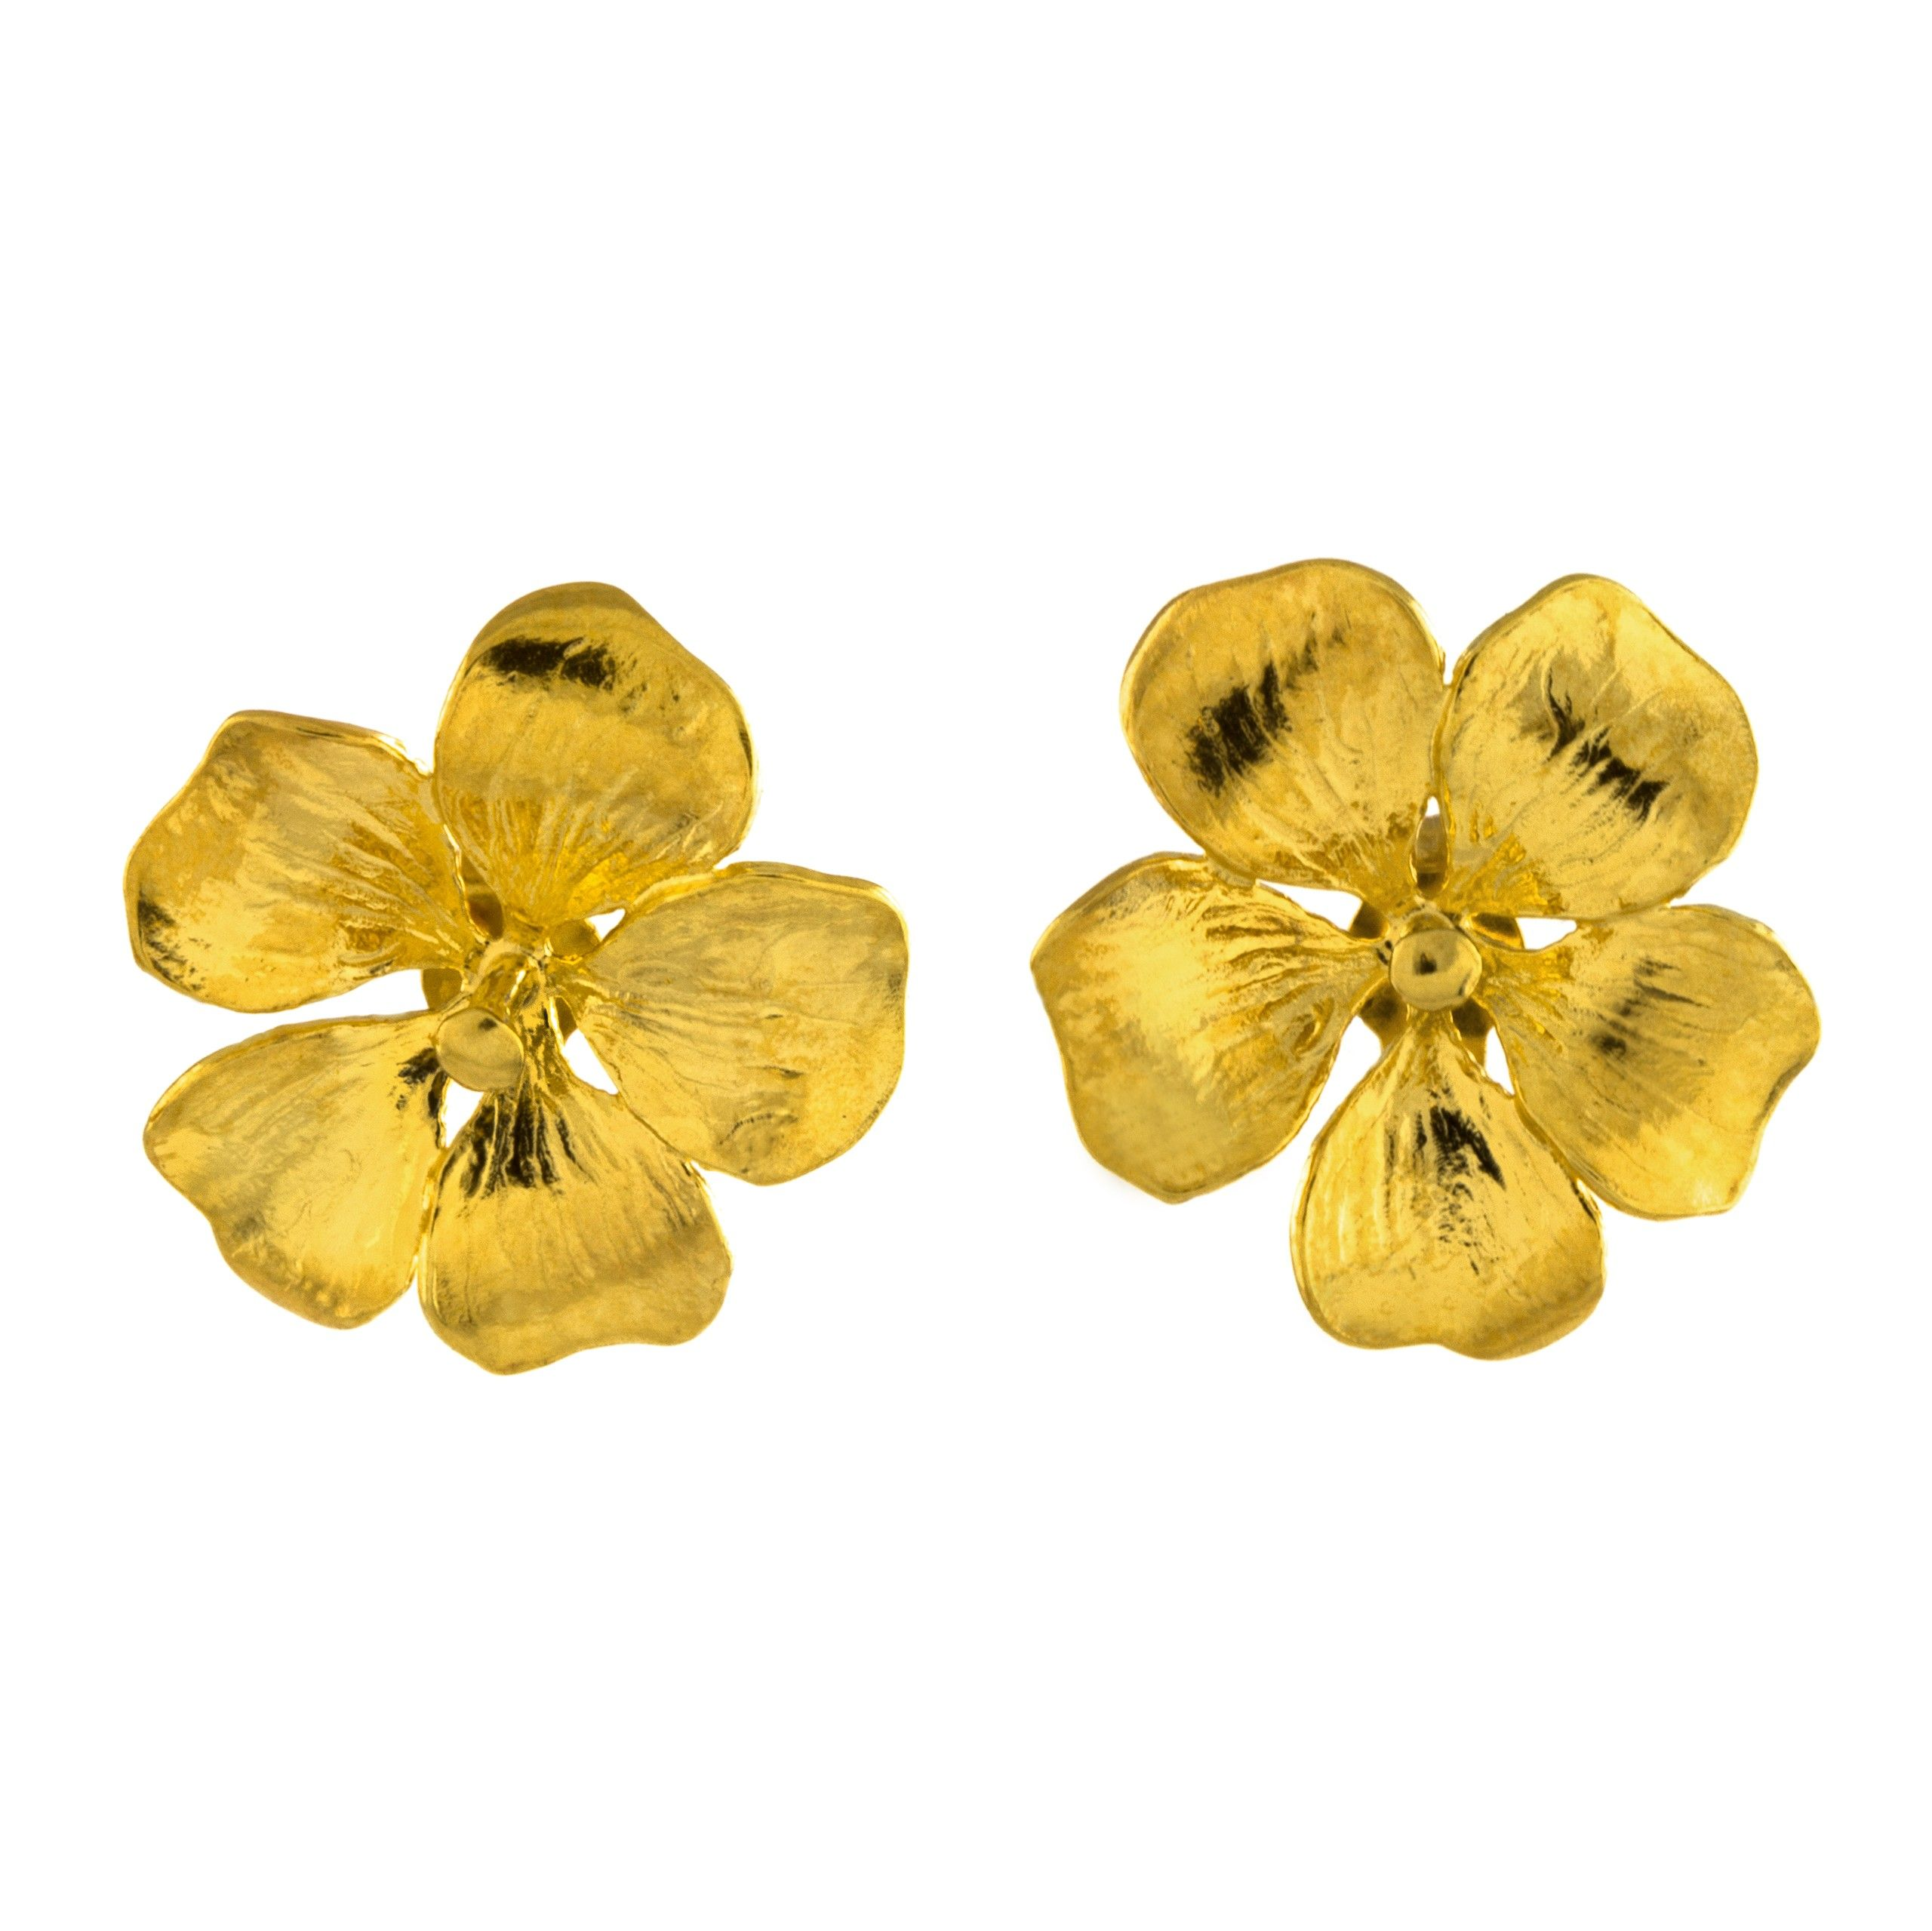 flower diamond diamonds jewellery stud stone scattered studs adamar earring img clover three big floral